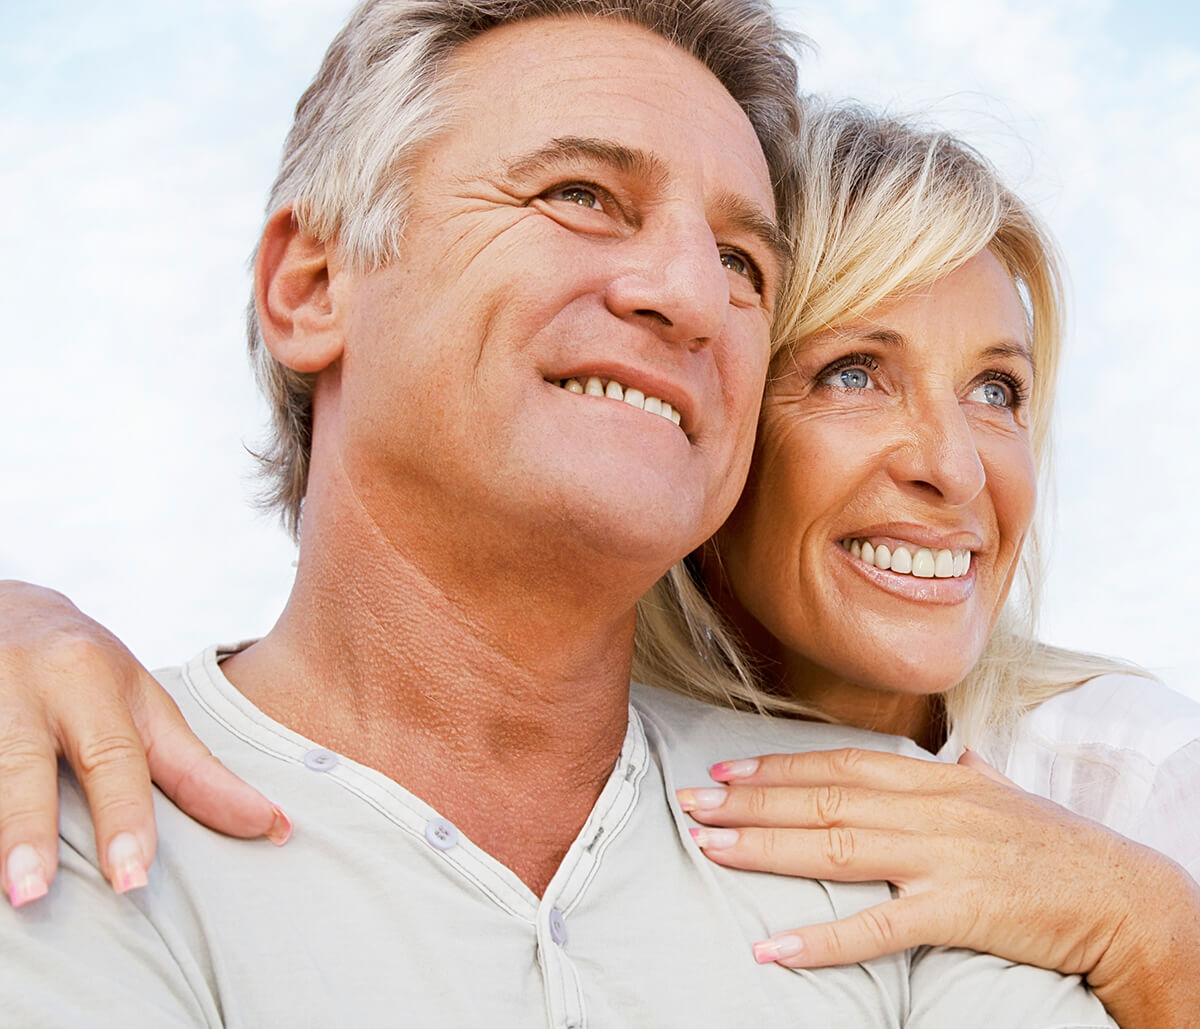 Dental Crowns, a Versatile Treatment Option to Restore Damaged Teeth in Milton, ON Area